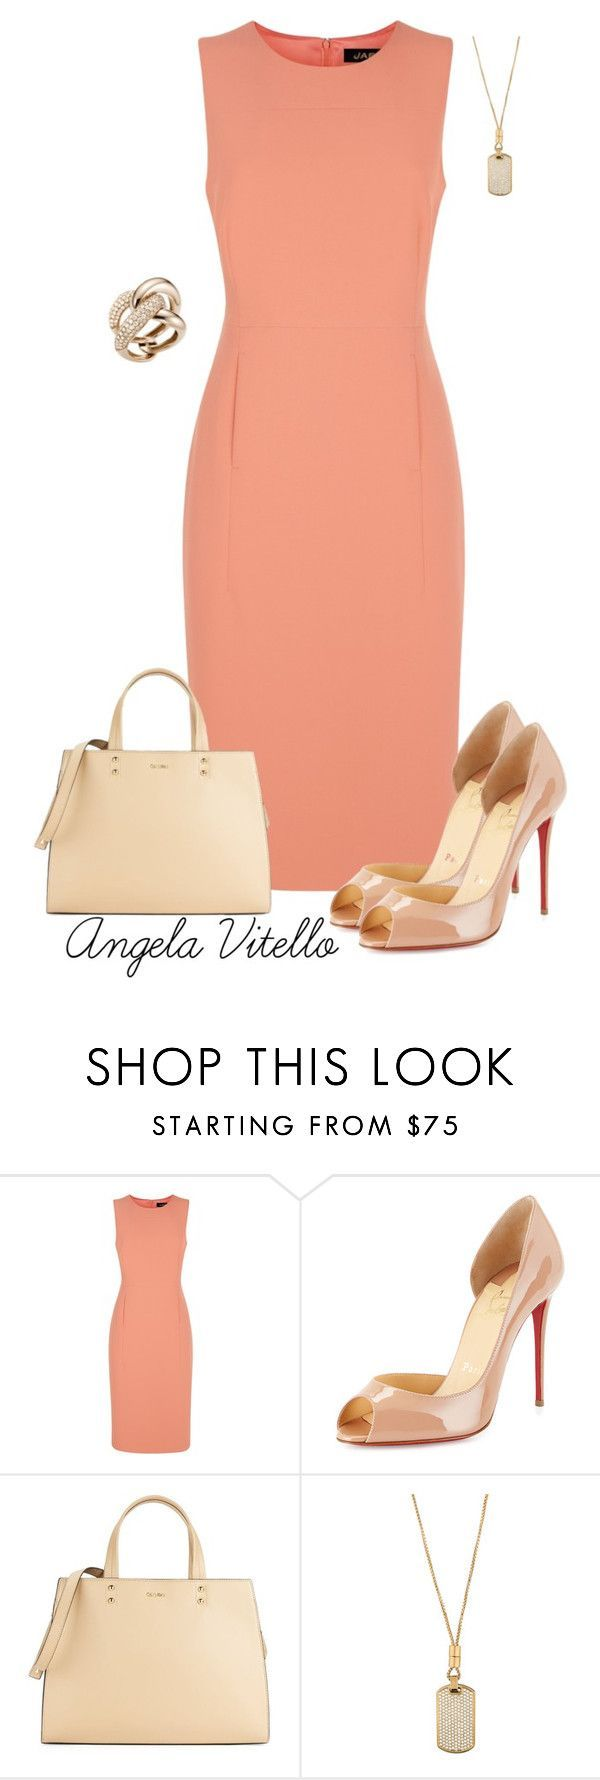 """""""Untitled #696"""" by angela-vitello on Polyvore featuring Jaeger, Christian Louboutin, Calvin Klein, Michael Kors and Mattioli"""